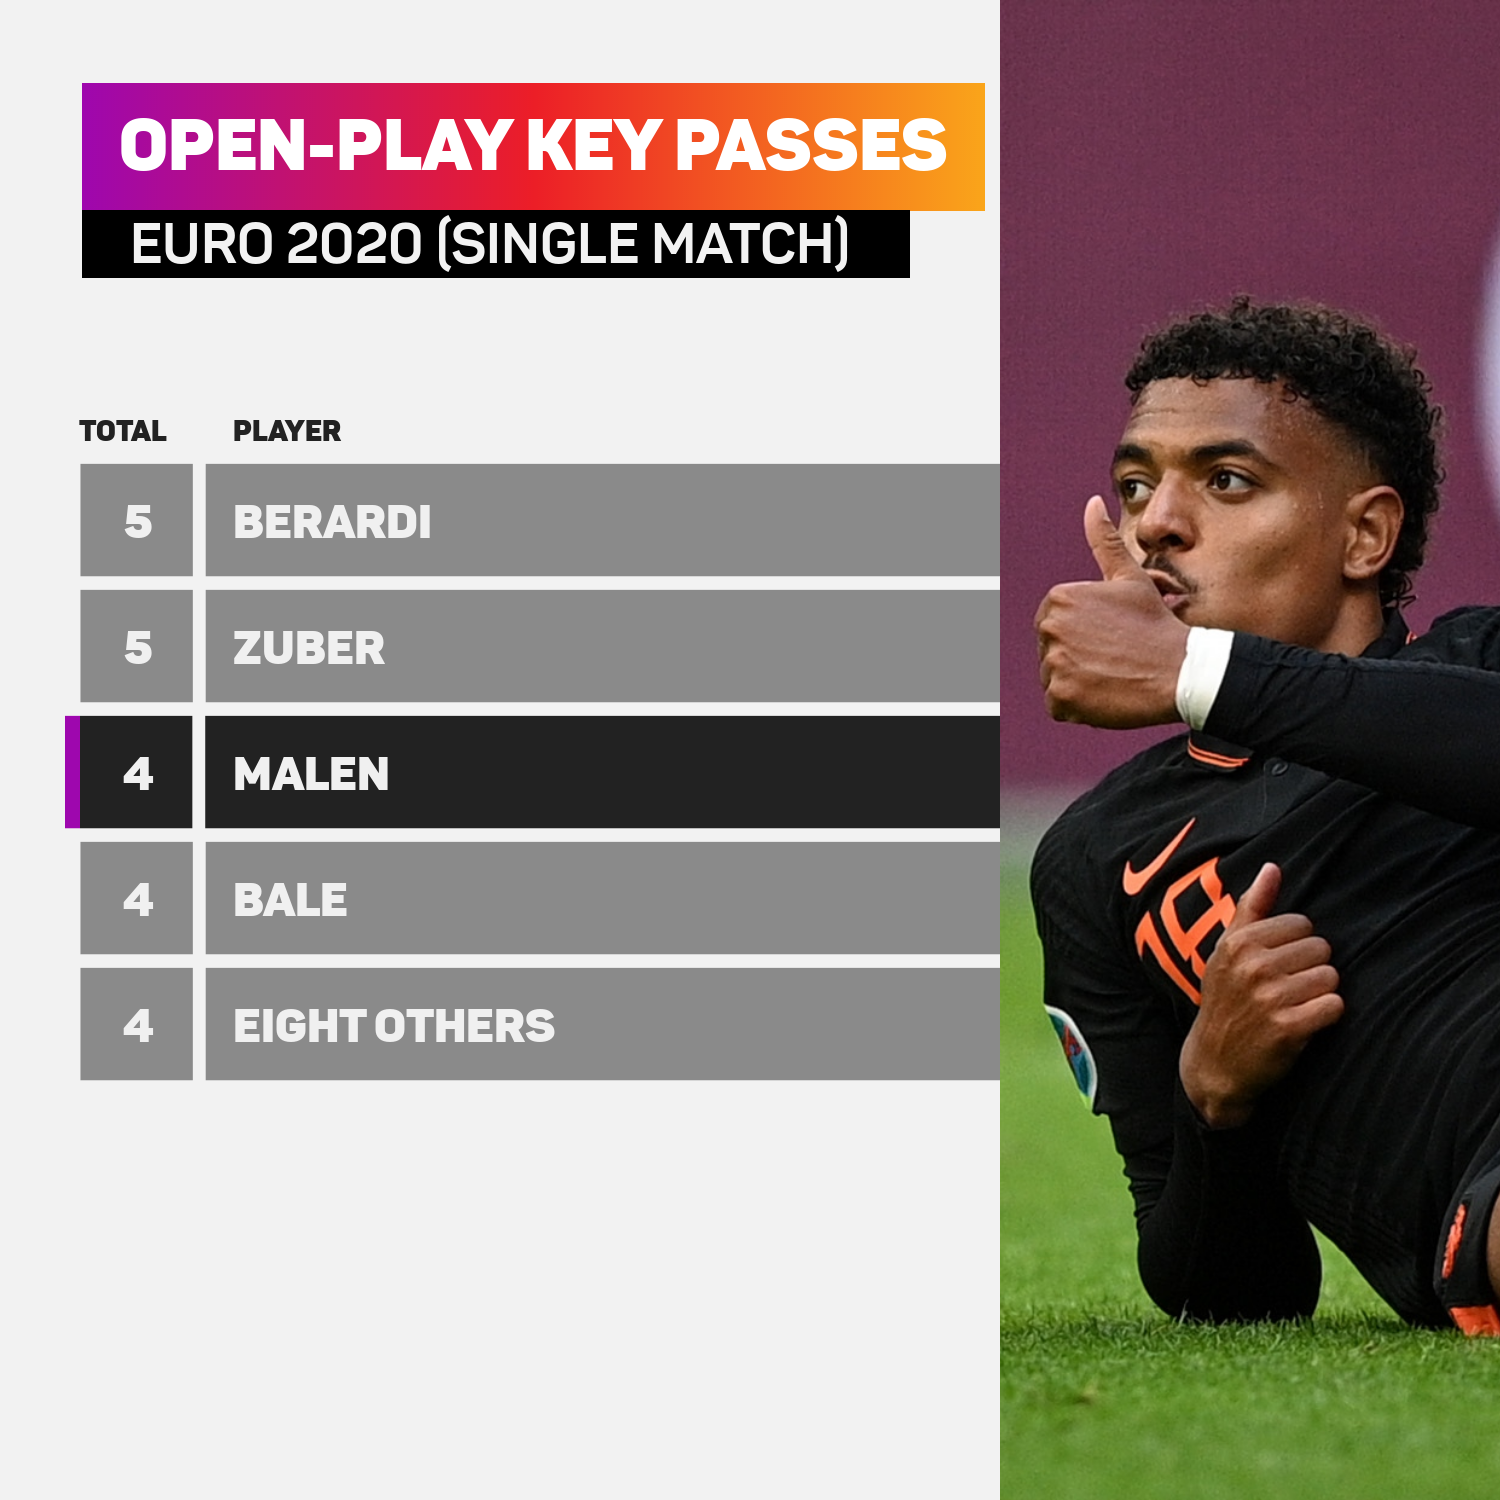 Malen's four key passes in a single Euro 2020 match has only been beaten by two players